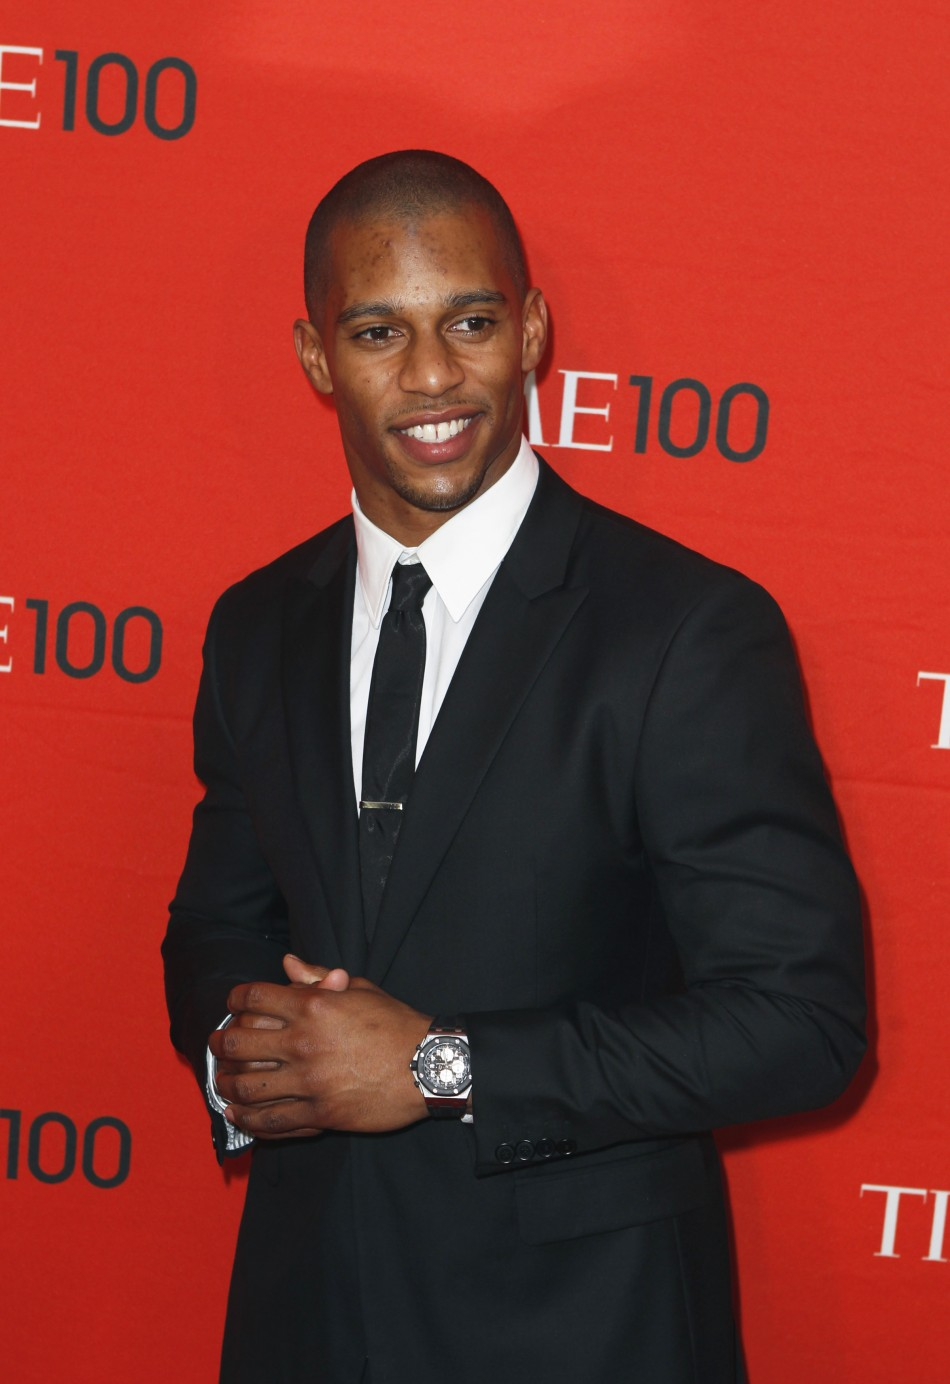 Football player Victor Cruz arrives to be honored at the Time 100 Gala in New York